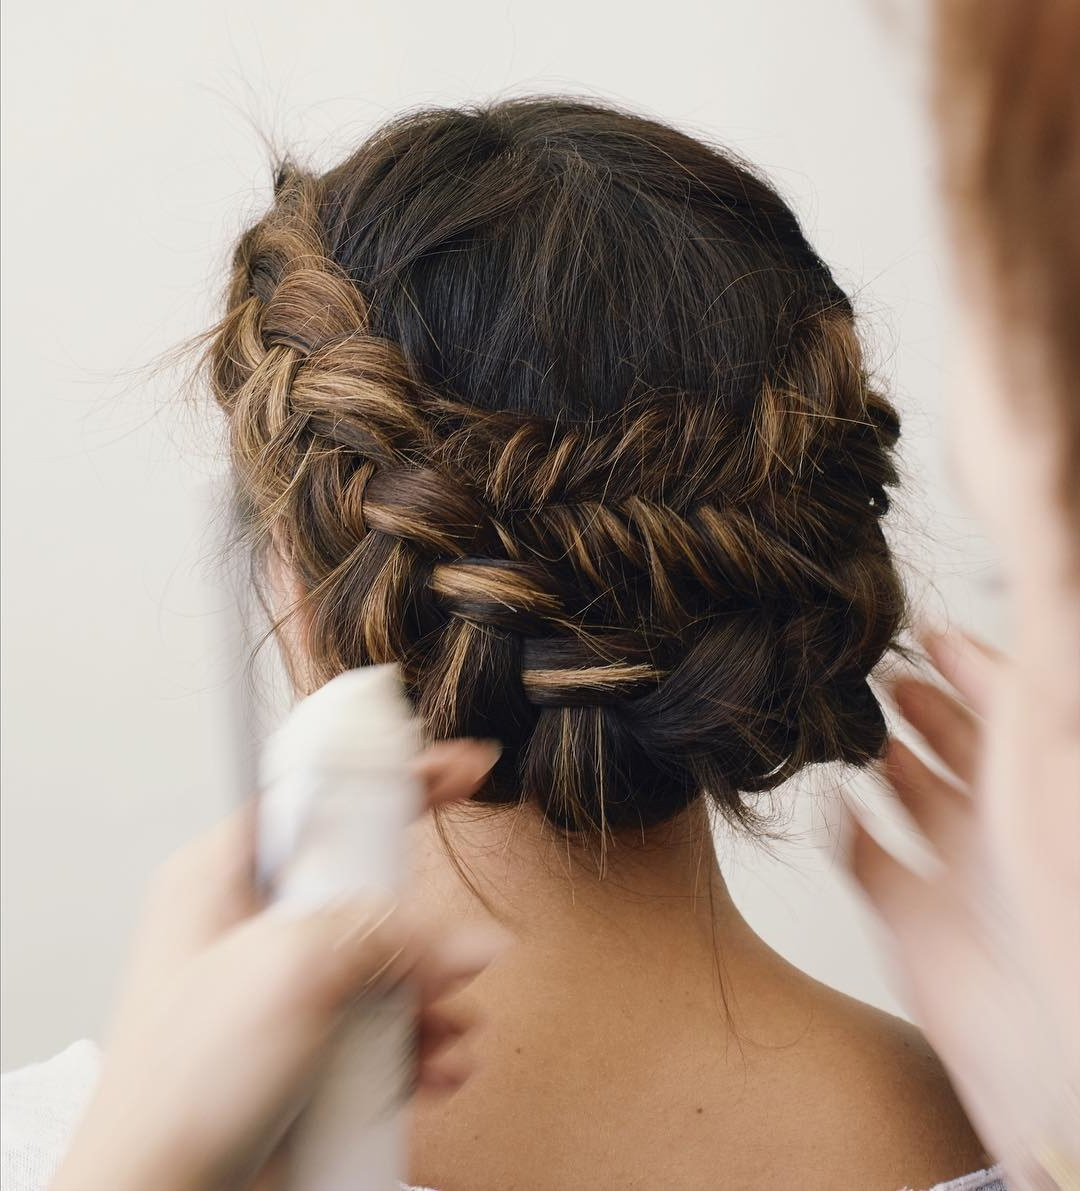 Brides Pertaining To Latest Short Side Braid Bridal Hairstyles (View 1 of 20)